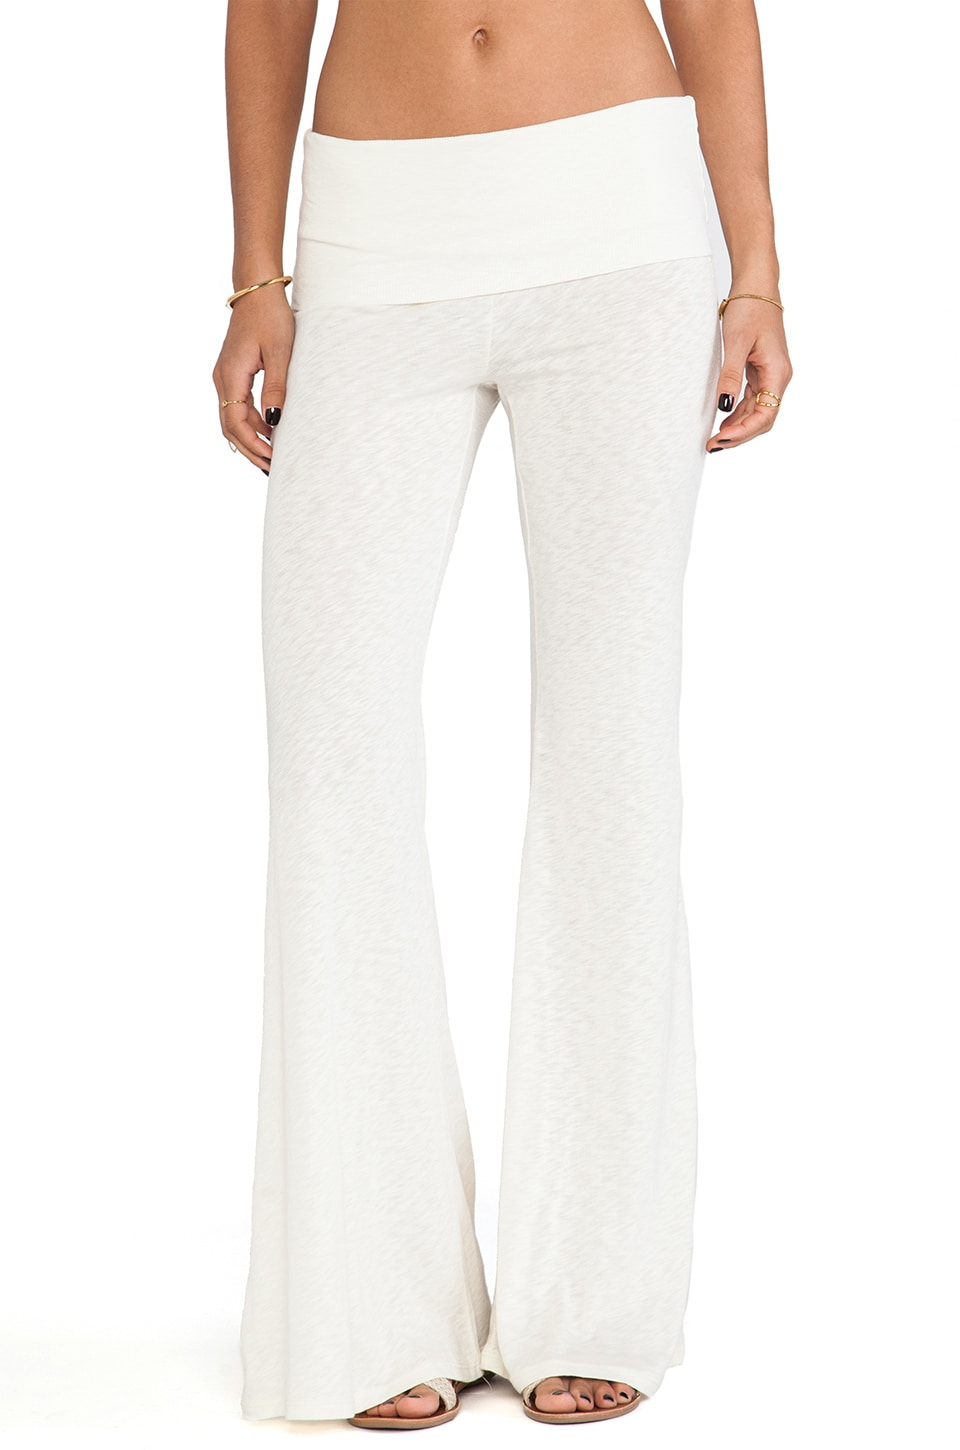 Blue Life Daydreamer Flare Pant in Dirty White